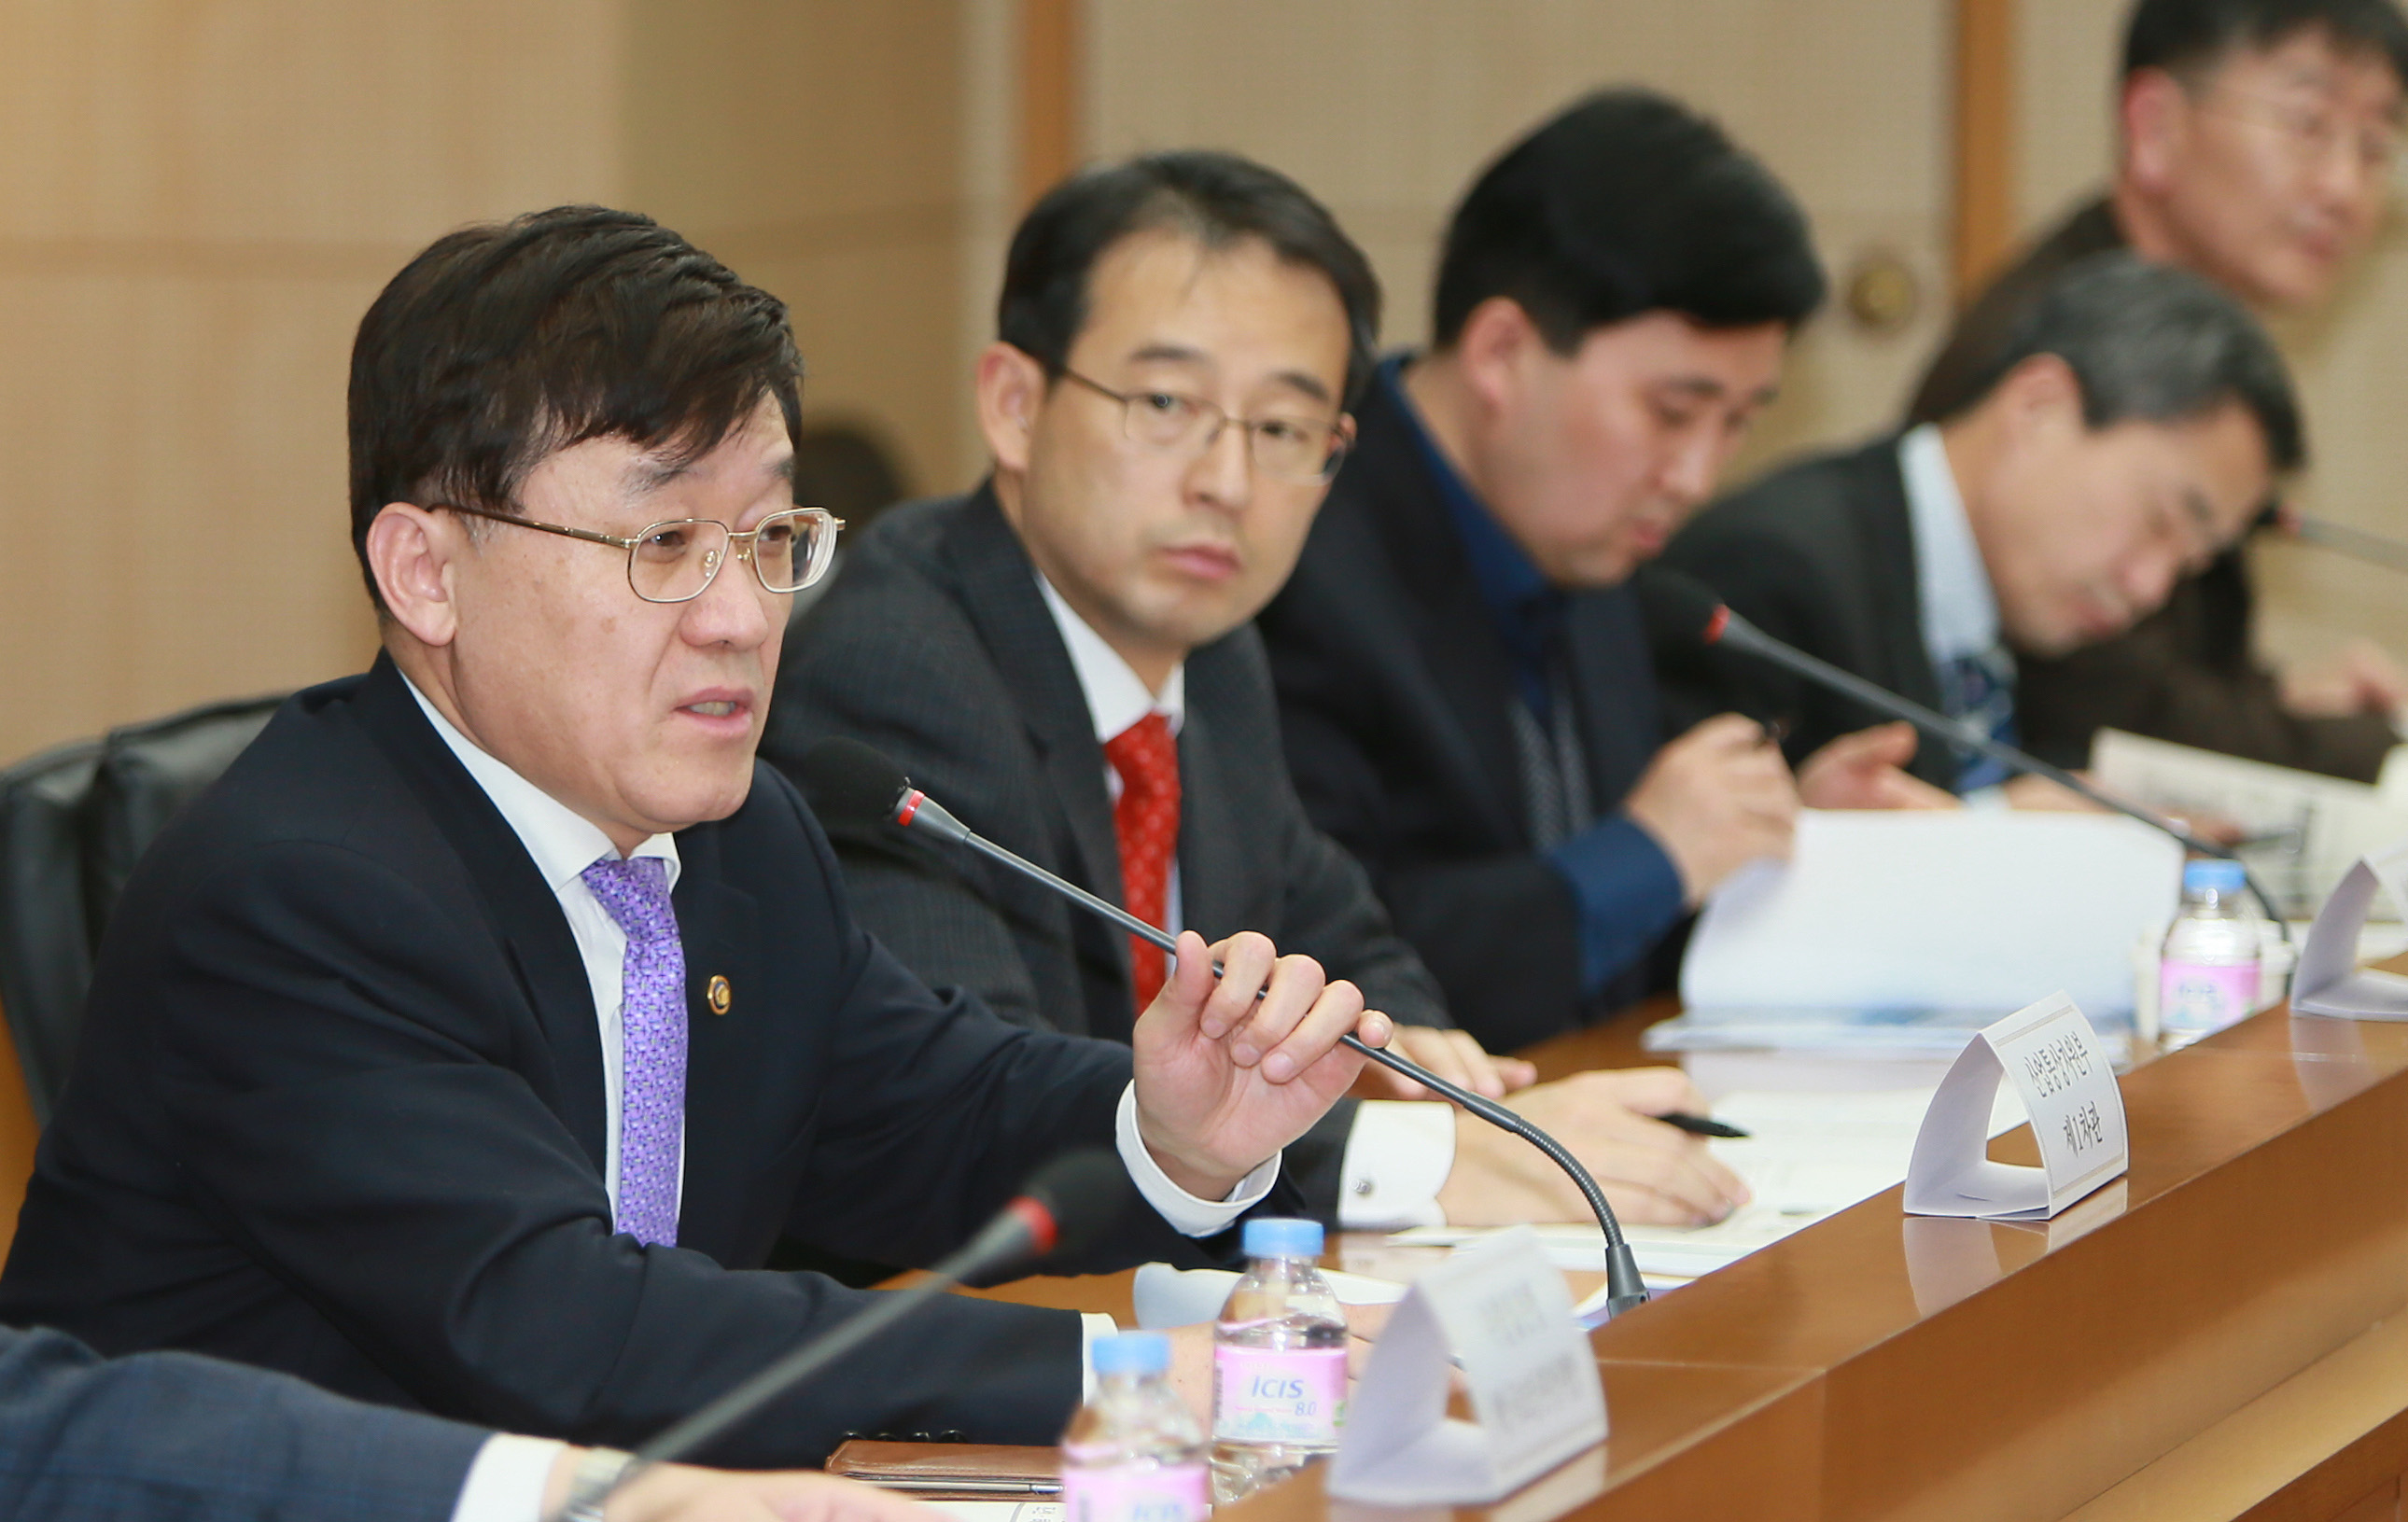 Vice Minister Jeong hosts discussion on development of eco-friendly, smart ships